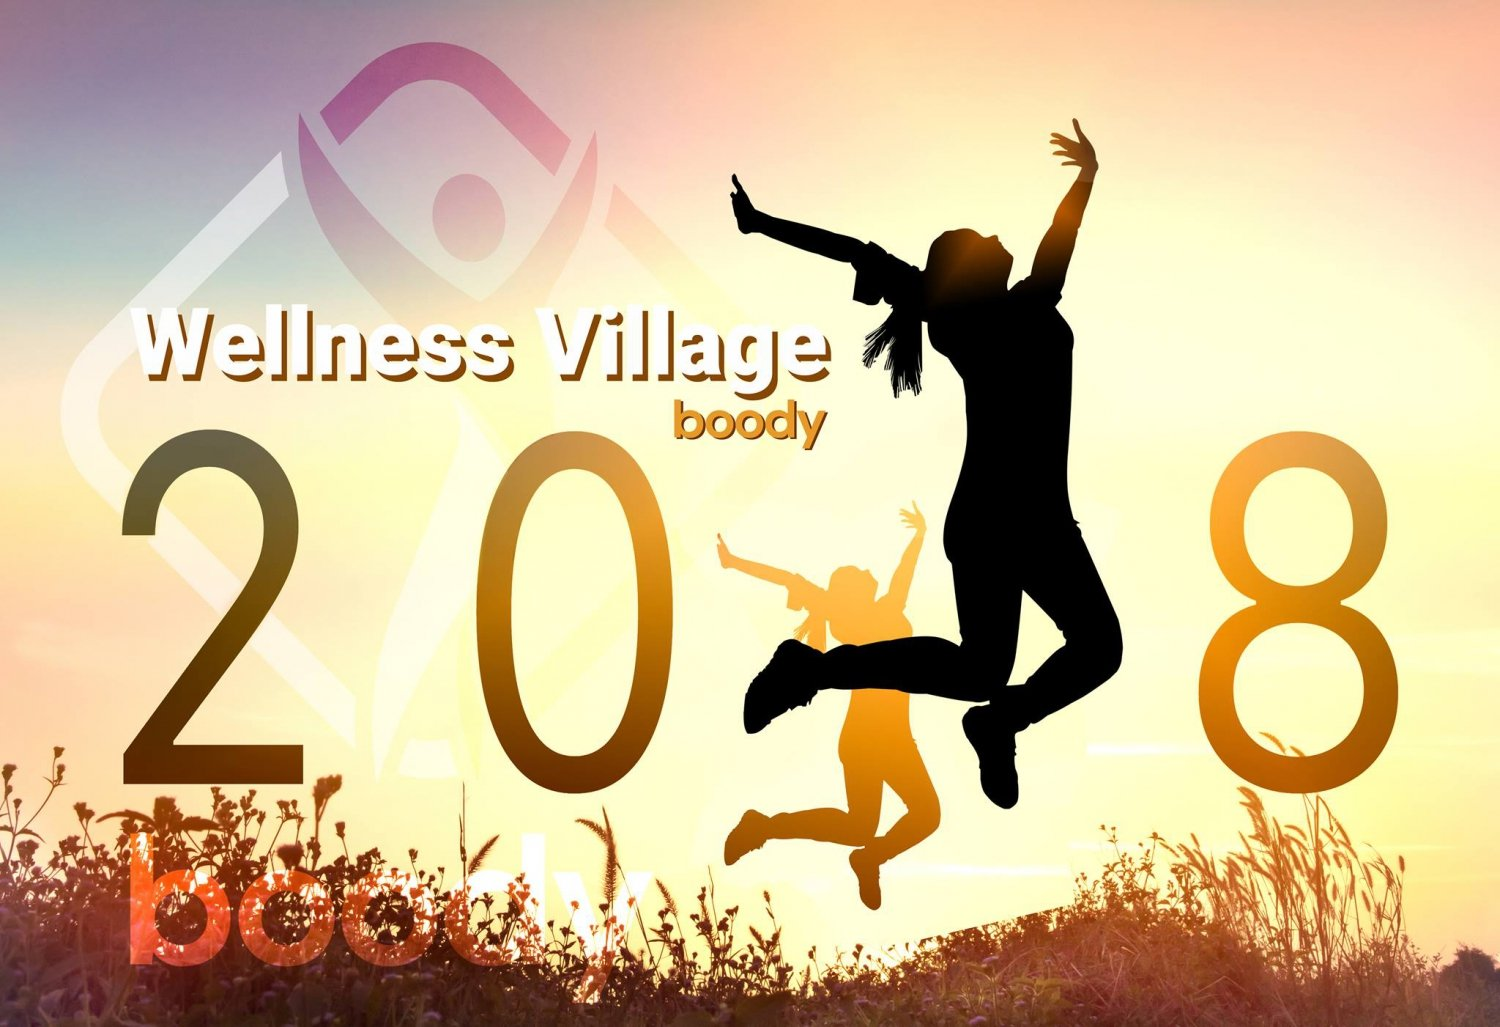 Wellness Village